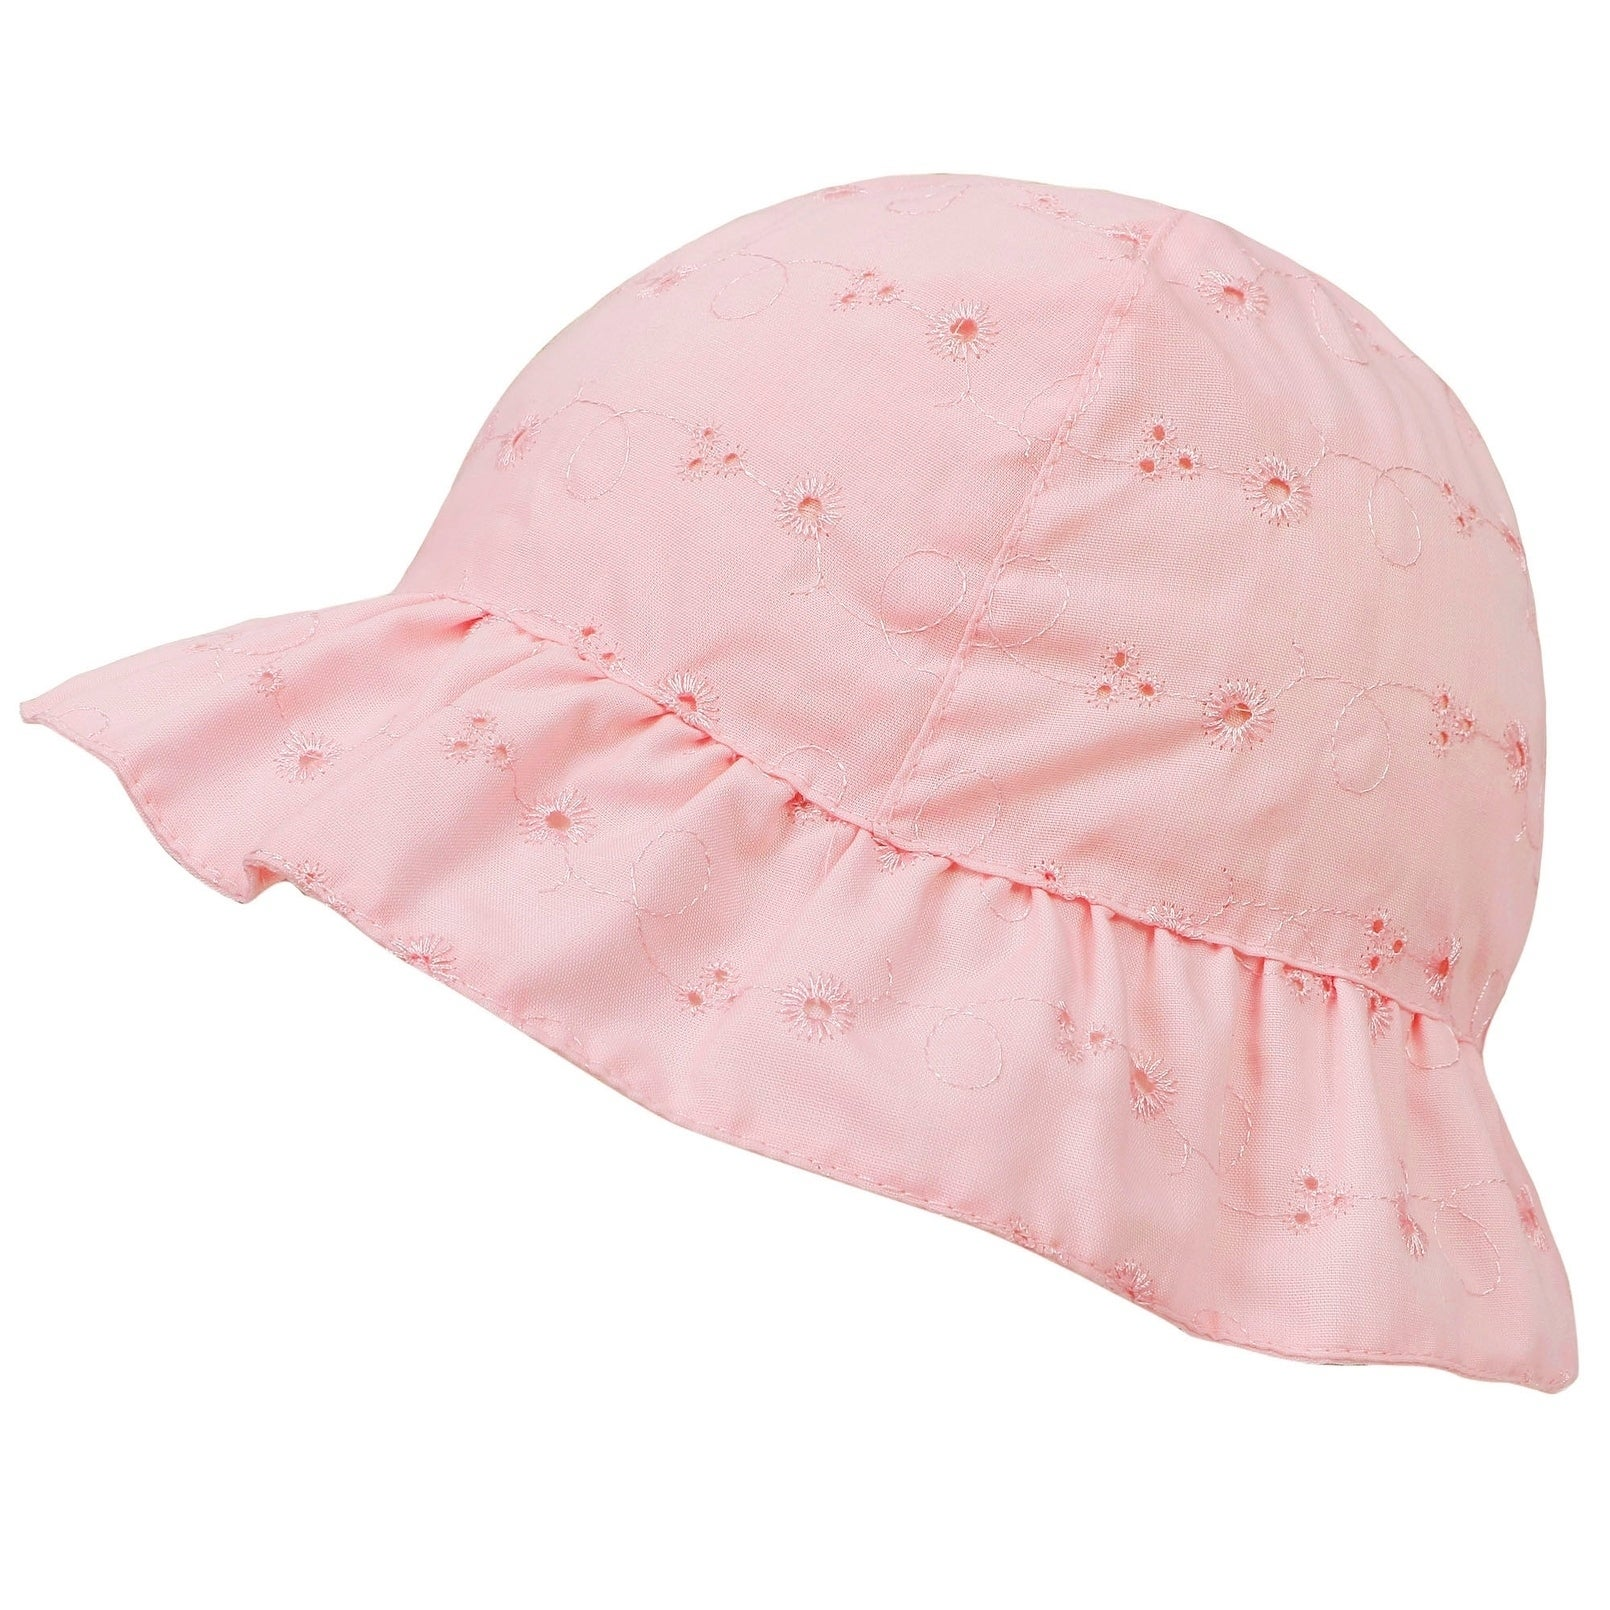 Shop UPF 50 UV Ray Sun Protection Wide Brim Baby Sun Hat - On Sale ... 022d7a811d0